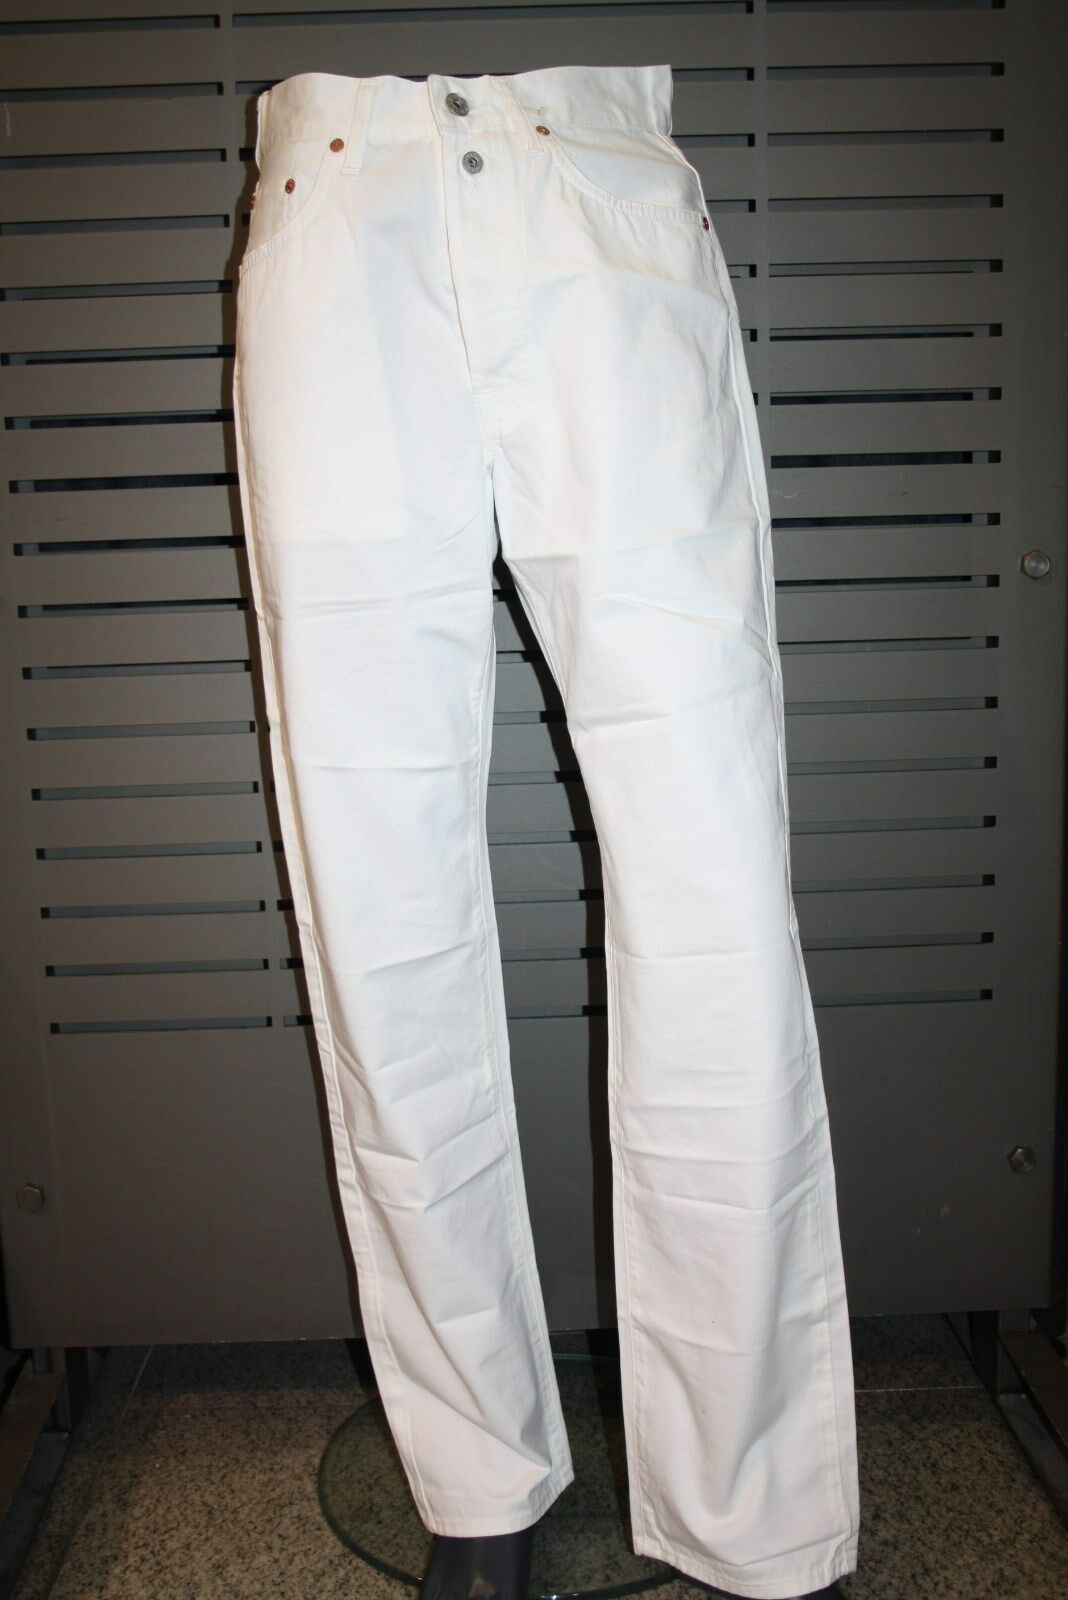 Replay Jeans M901 white weiss 100% Baumwolle Workwear Jeans Straight